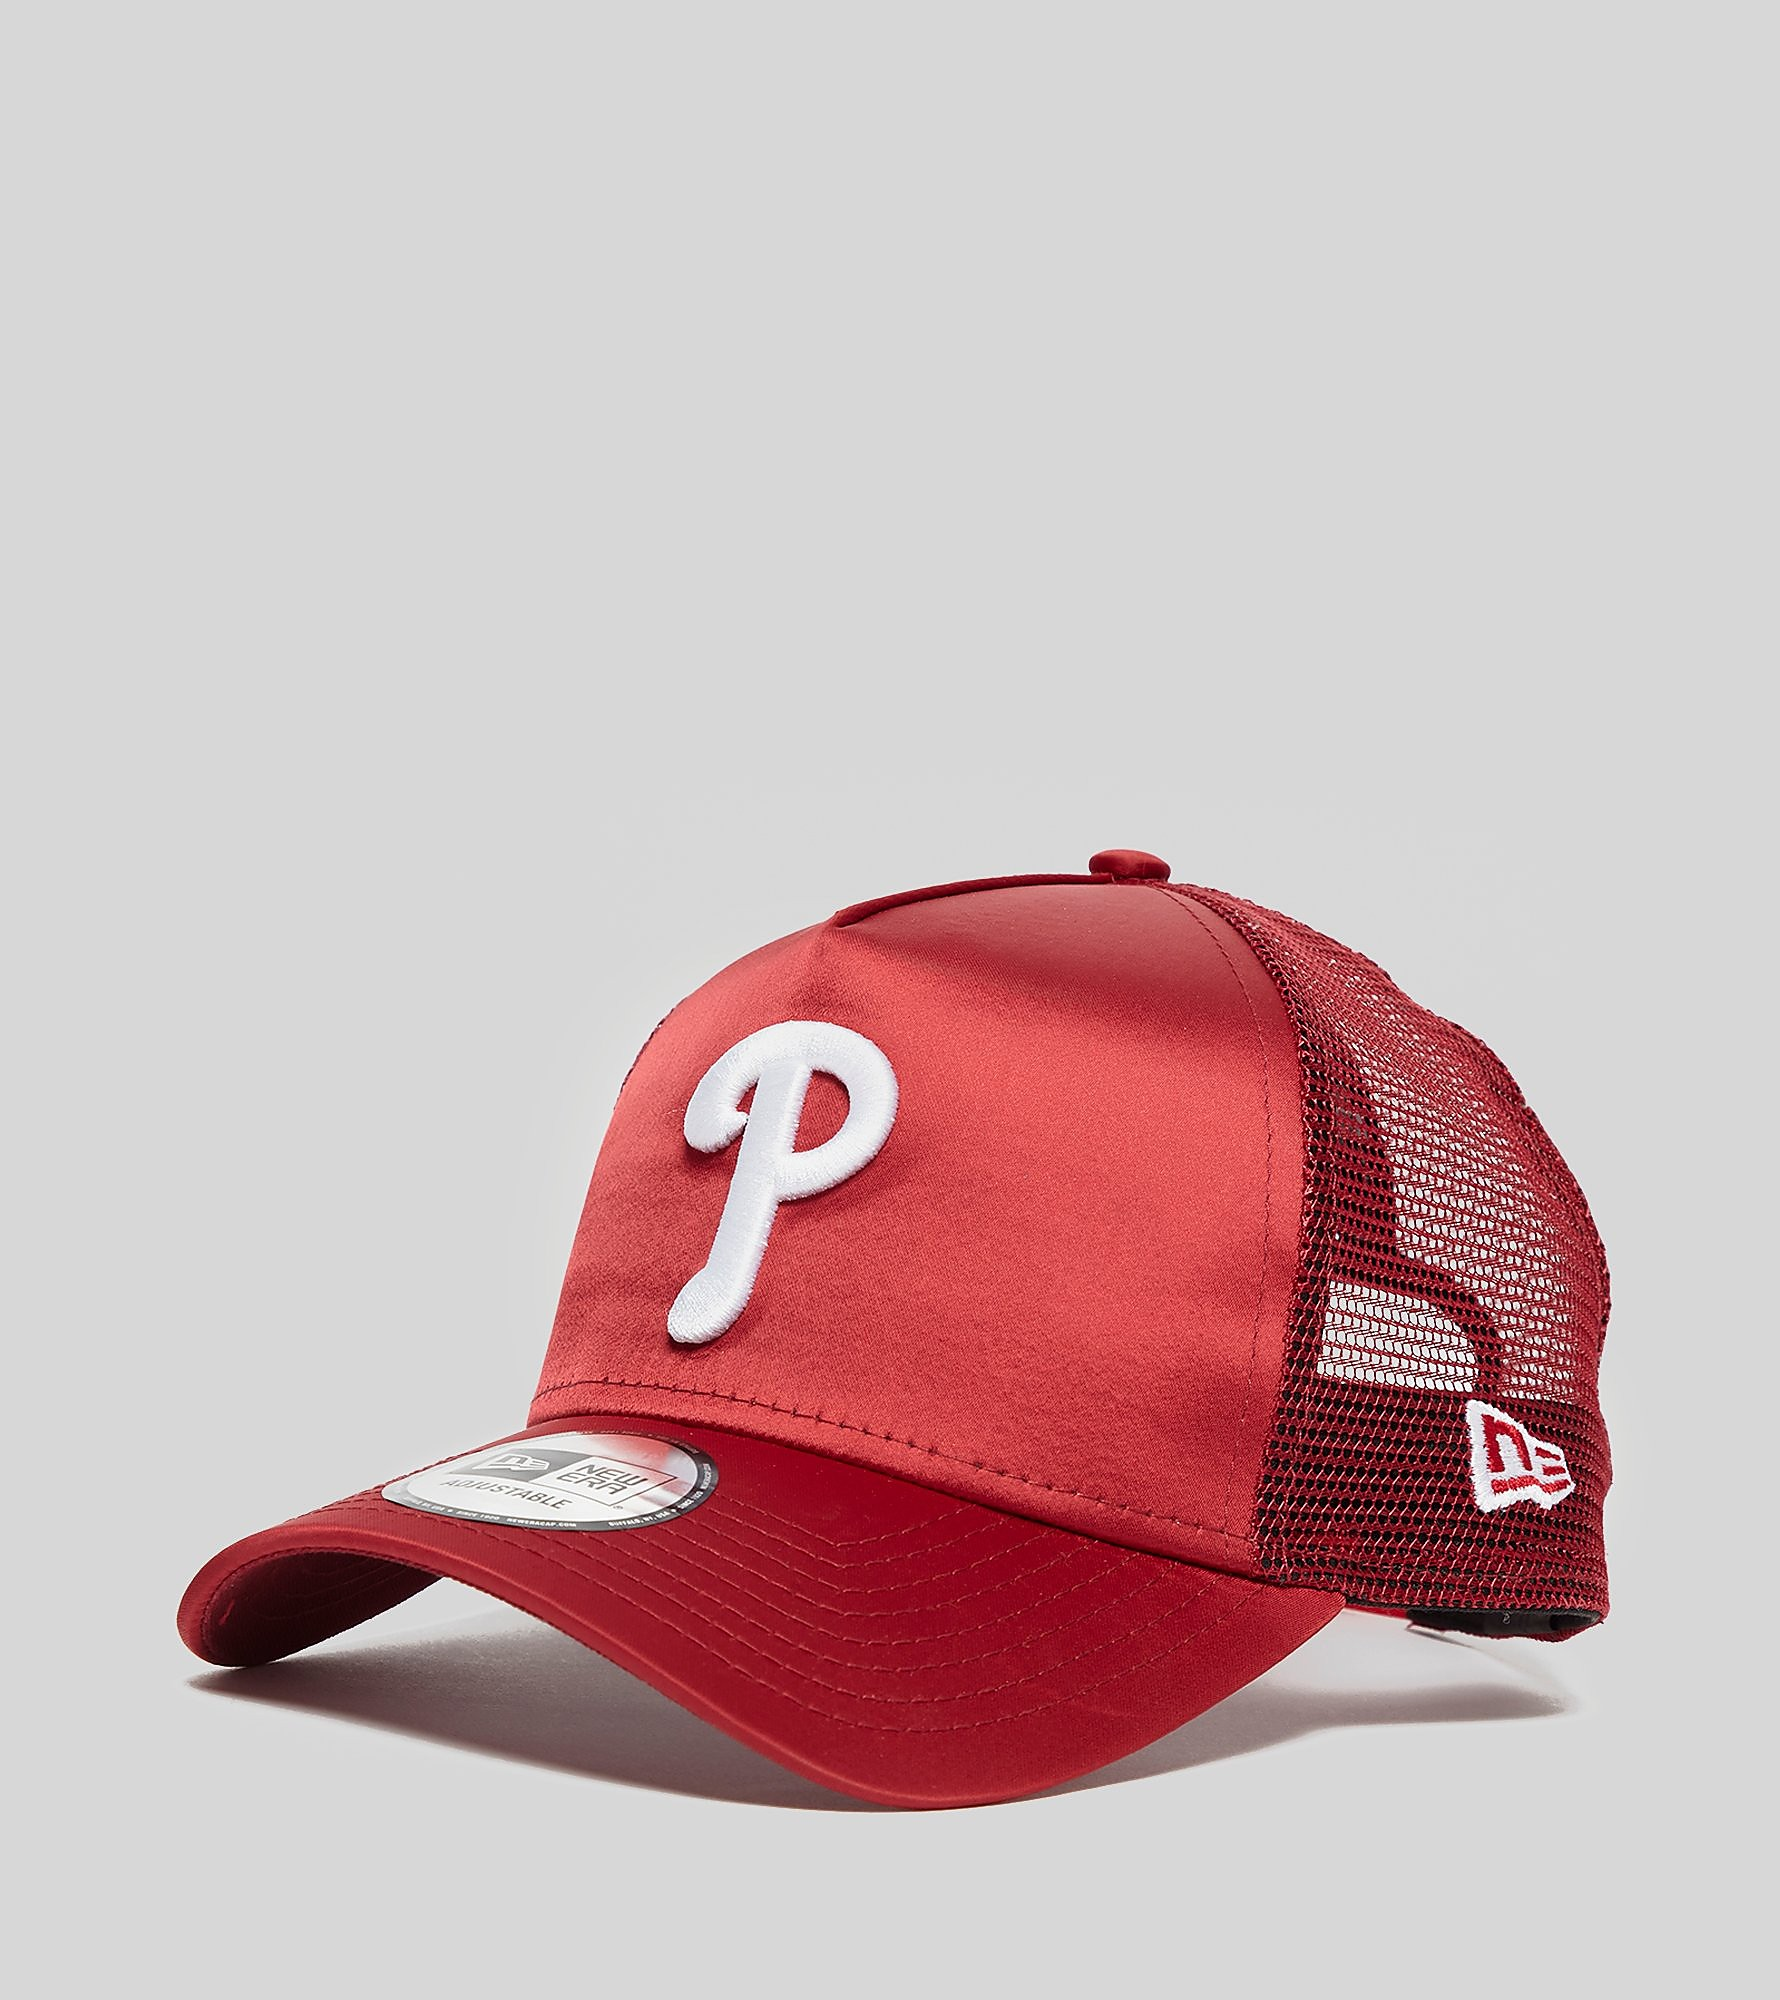 New Era Phillies Satin Trucker Cap - size? exclusive